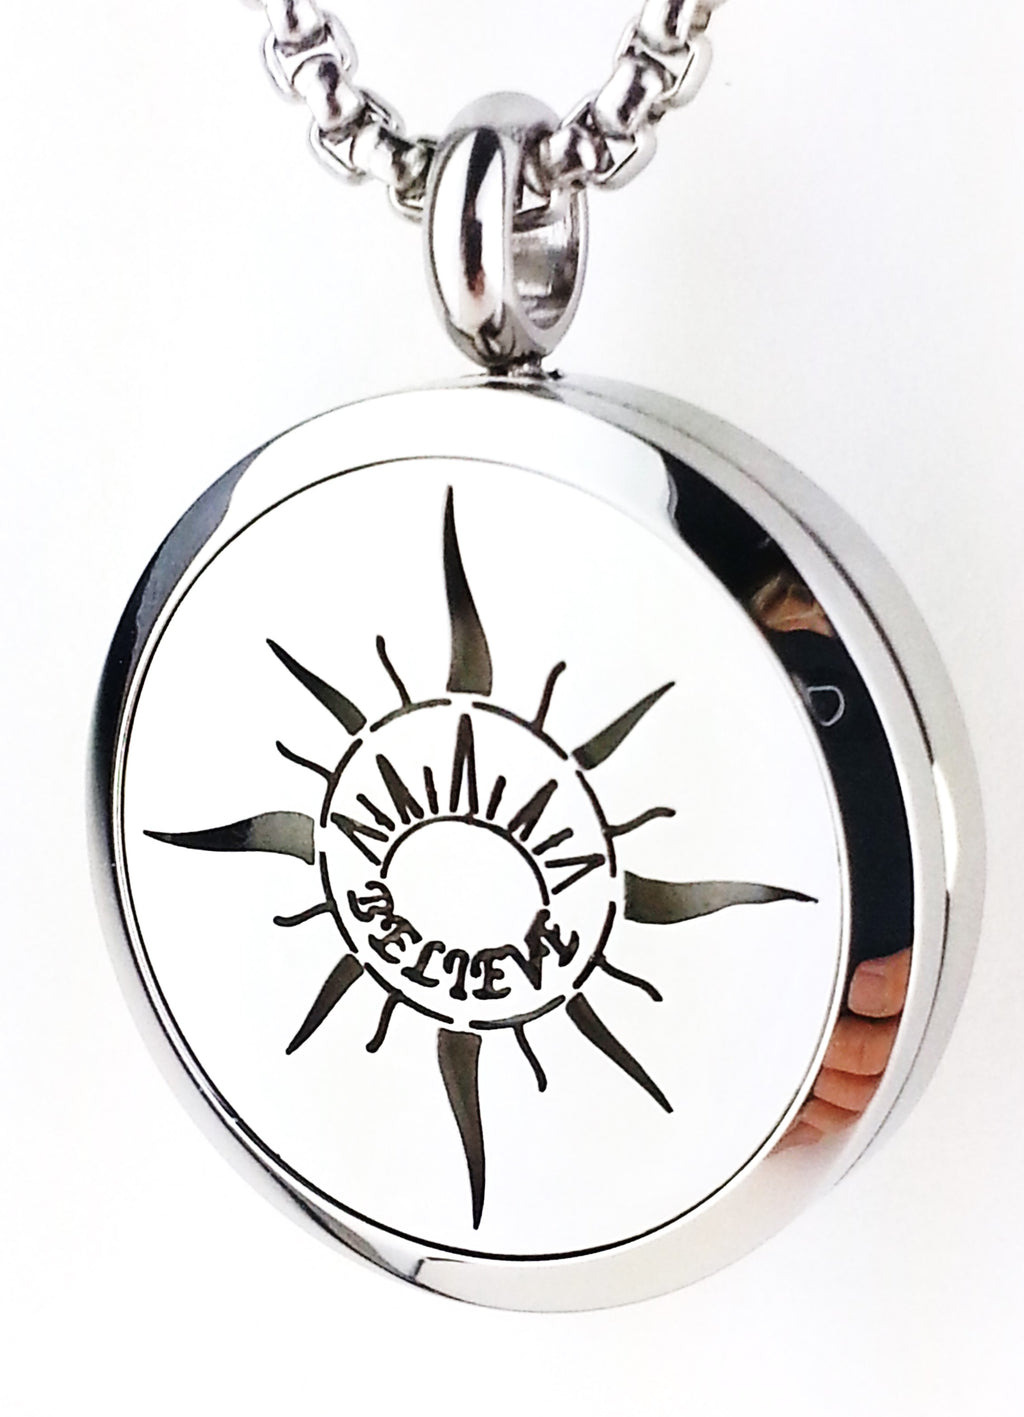 Sunrise Believe essential oil diffuser necklace from Earth in Wire